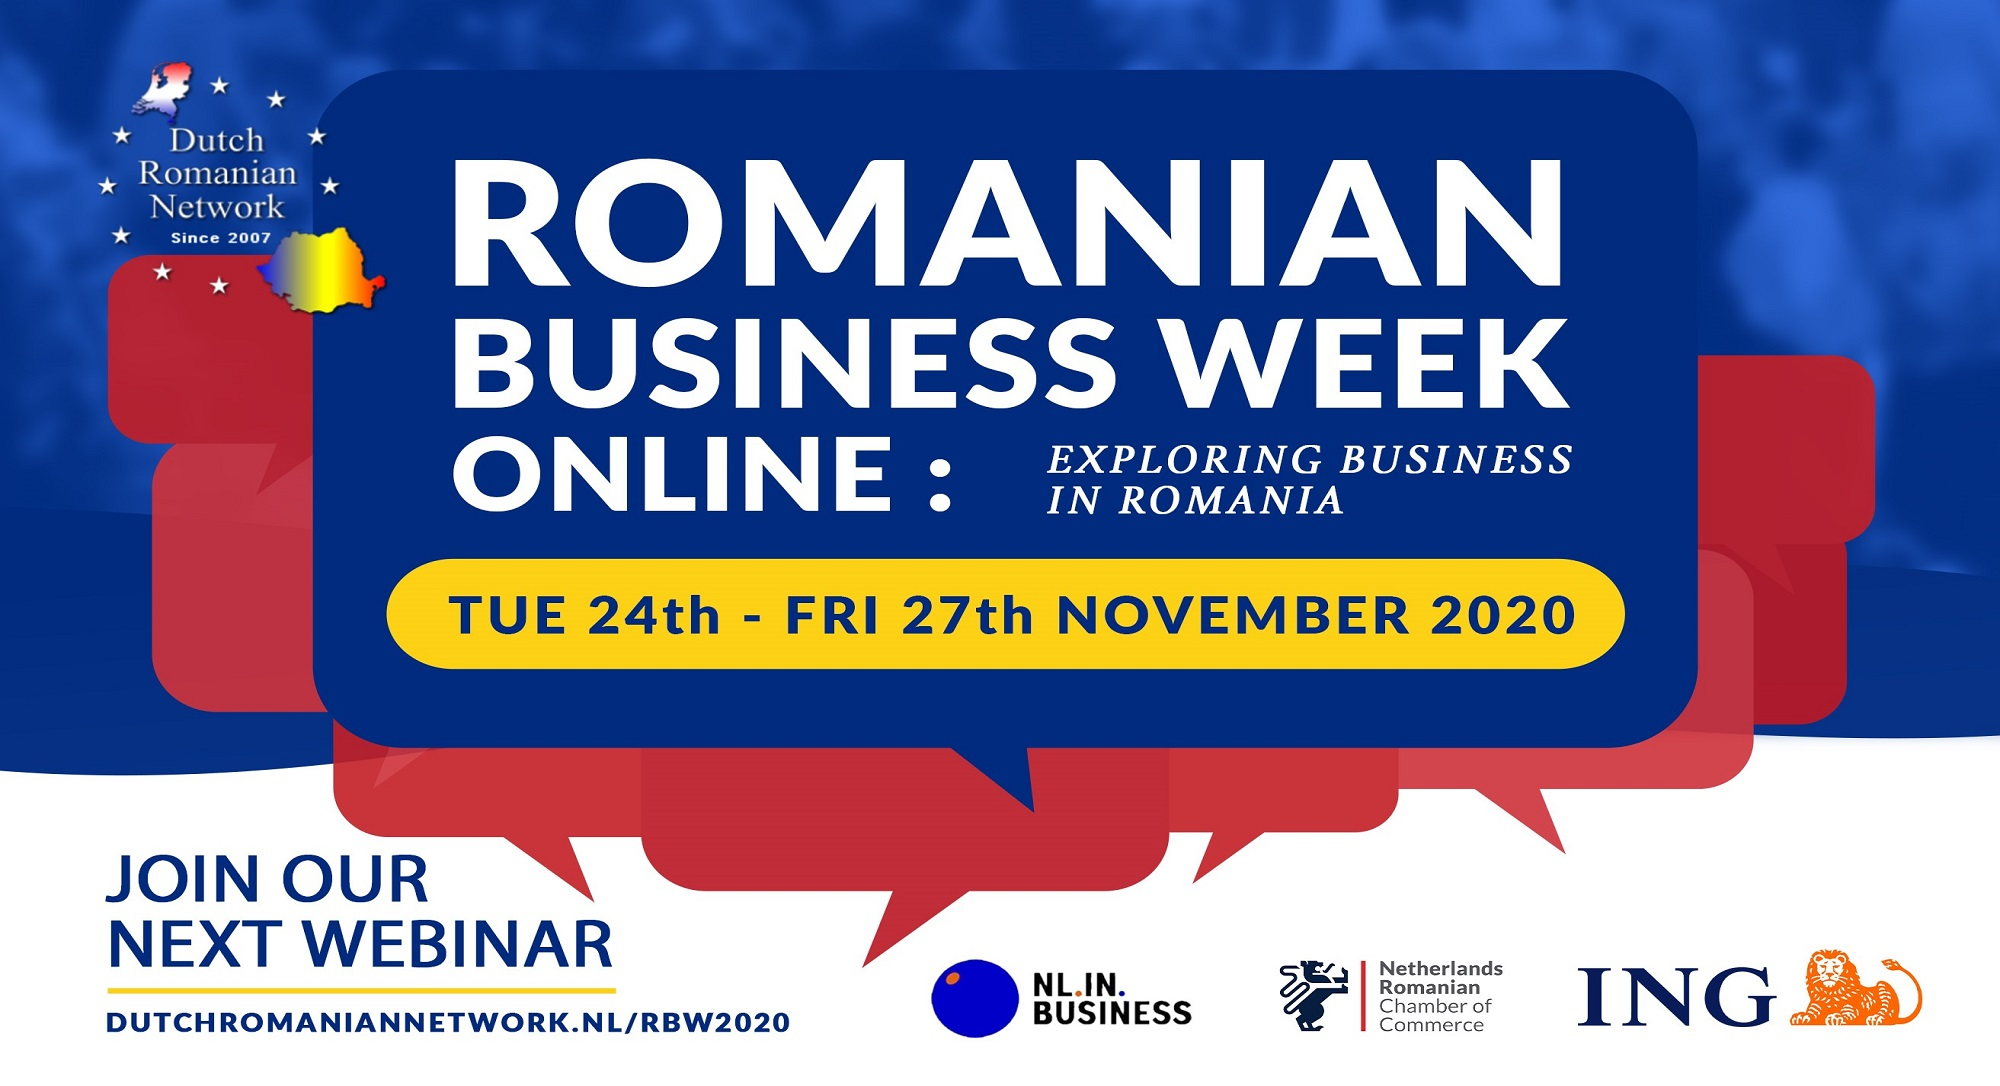 EXPLORING DOING BUSINESS IN ROMANIA